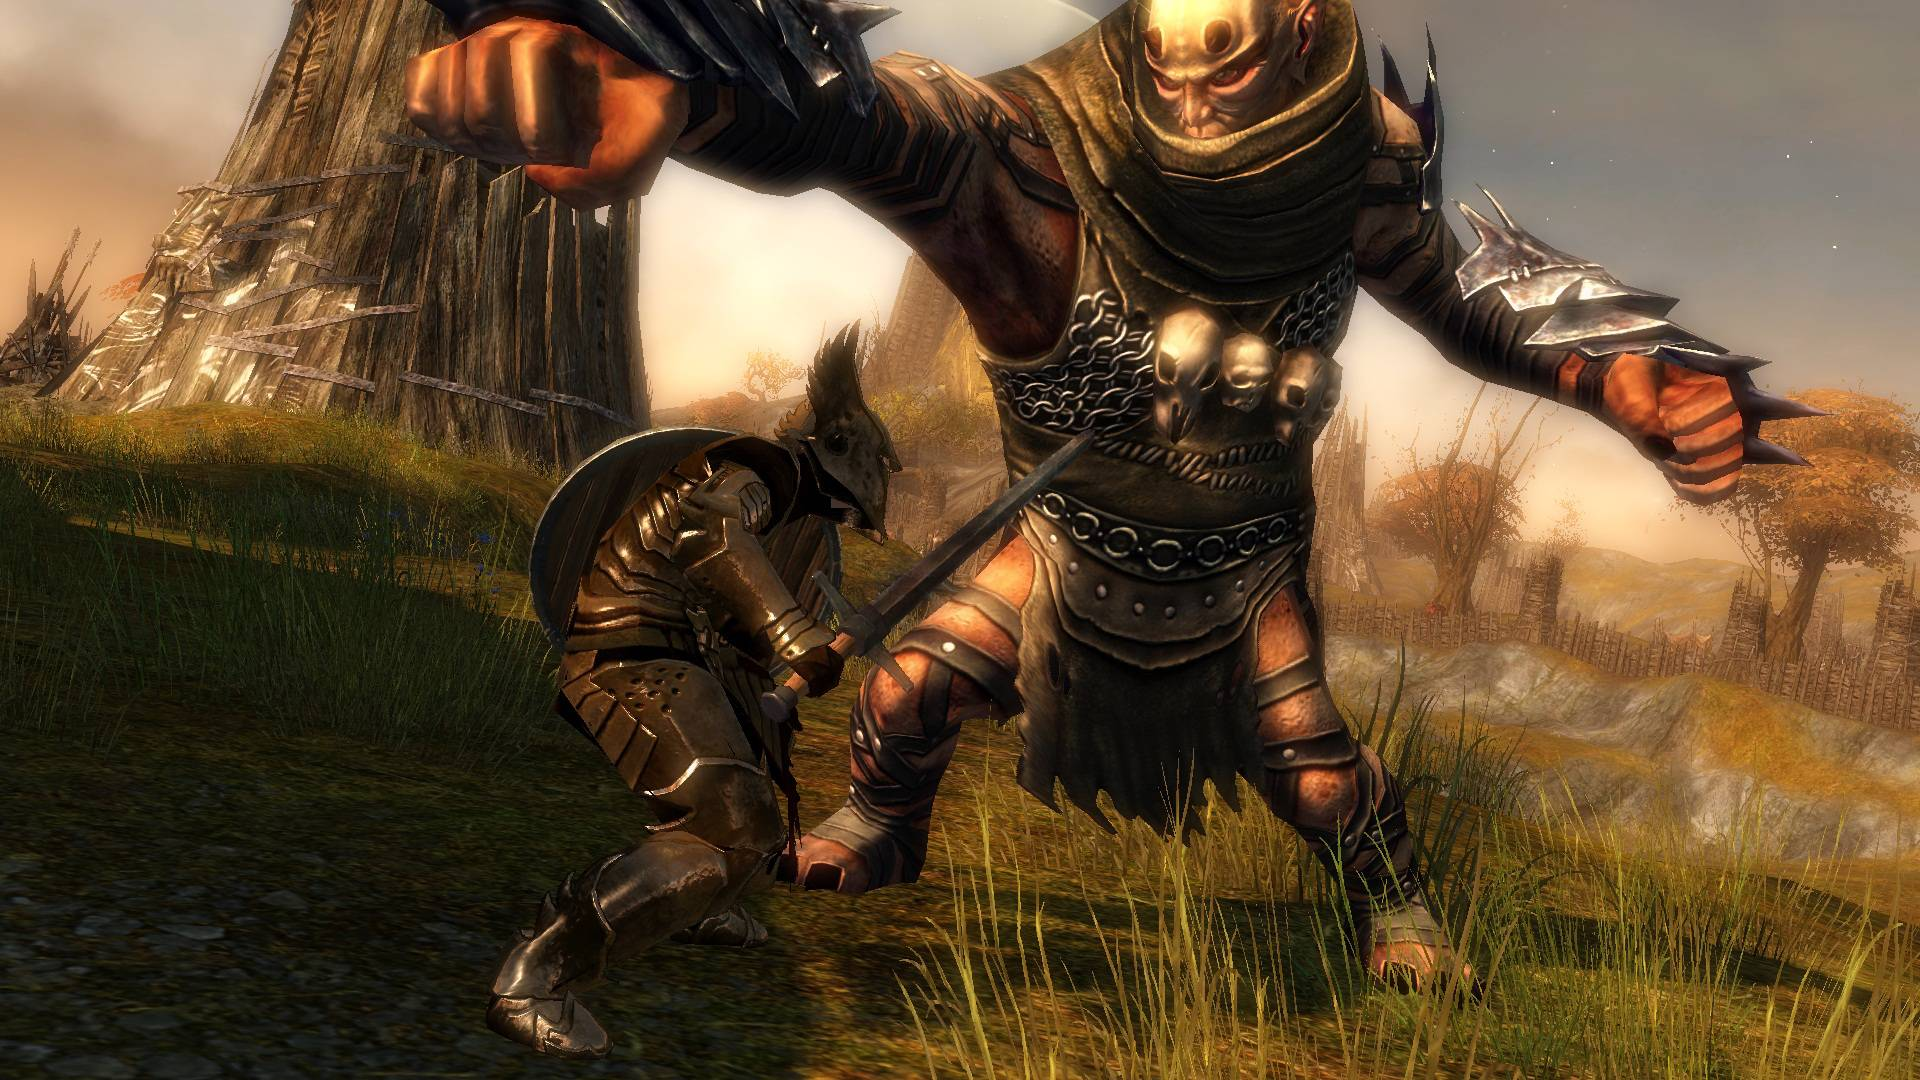 Guild Wars 2 introduces the Warrior class